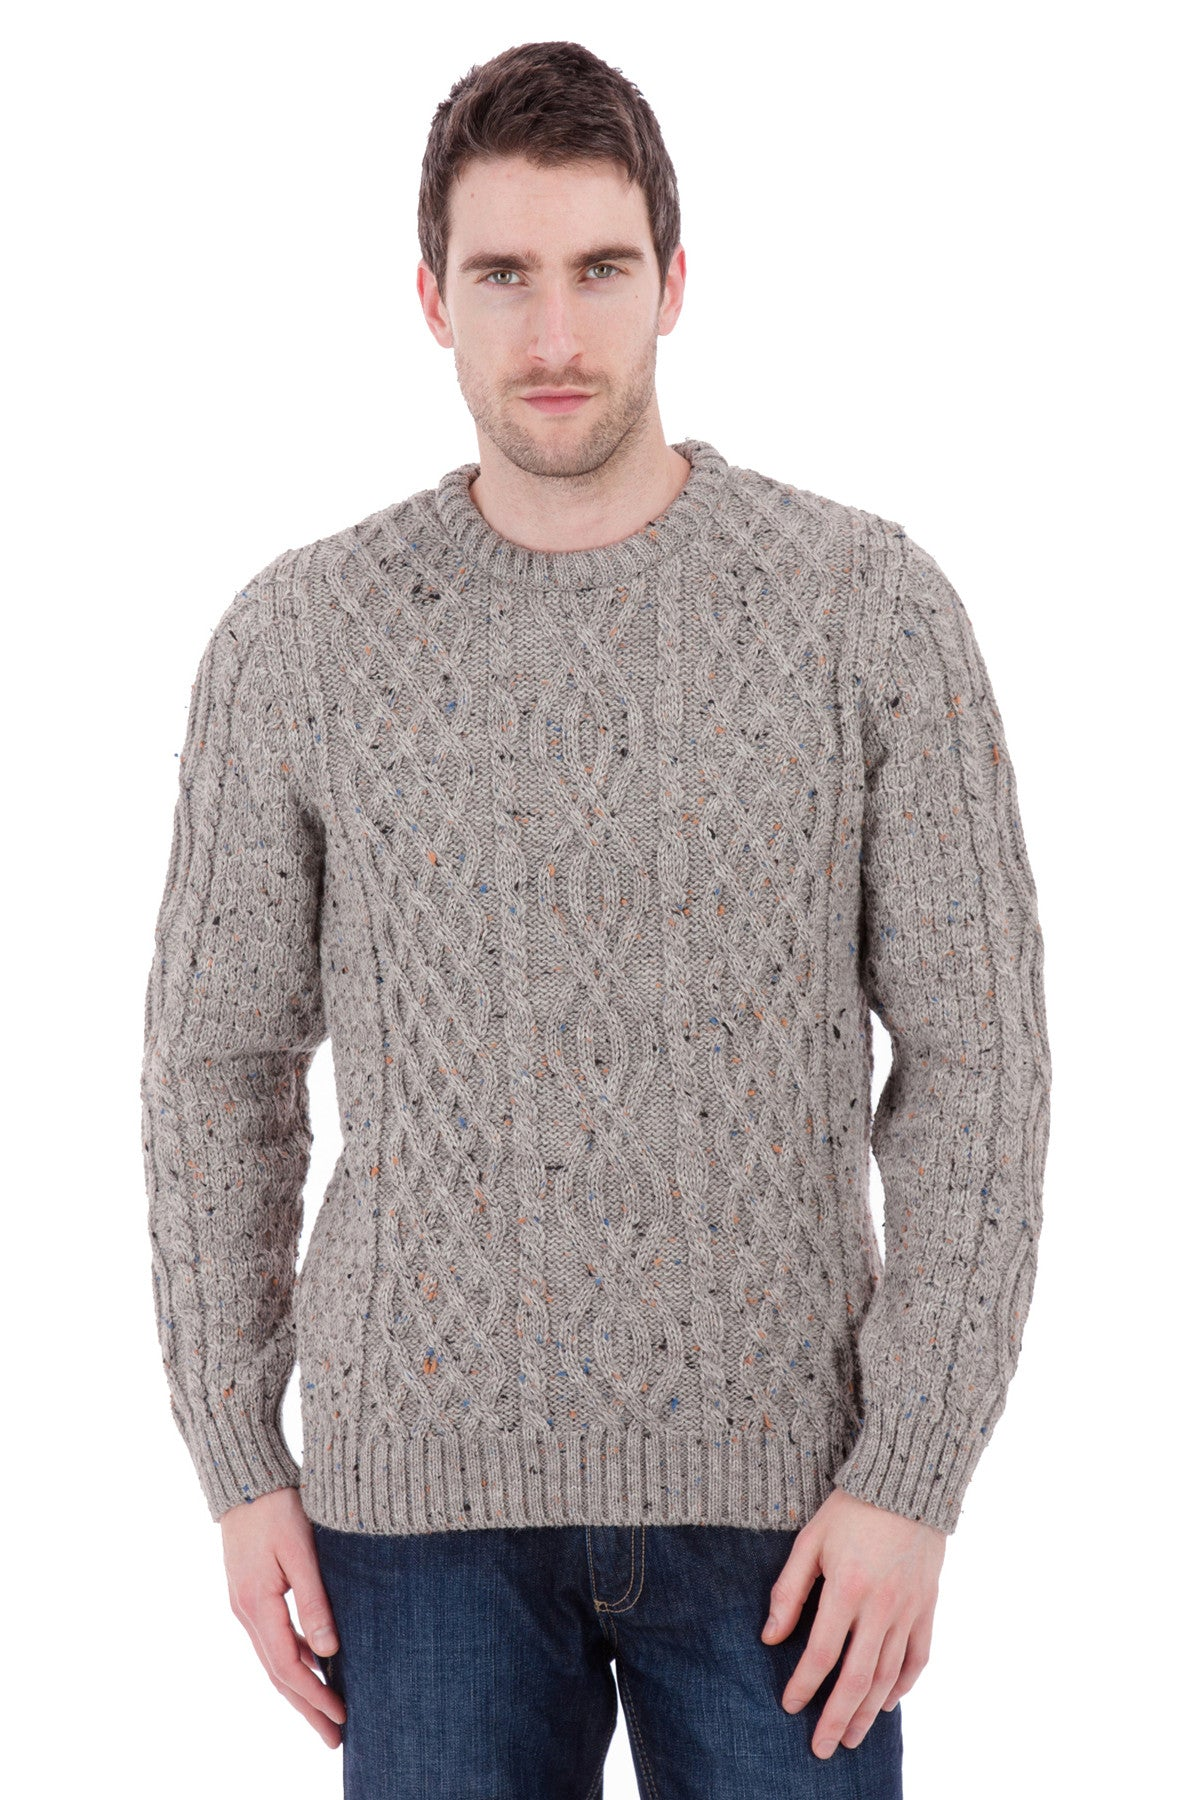 Jarvis - Braken Nepp Jumper Sweater - Pure British Wool